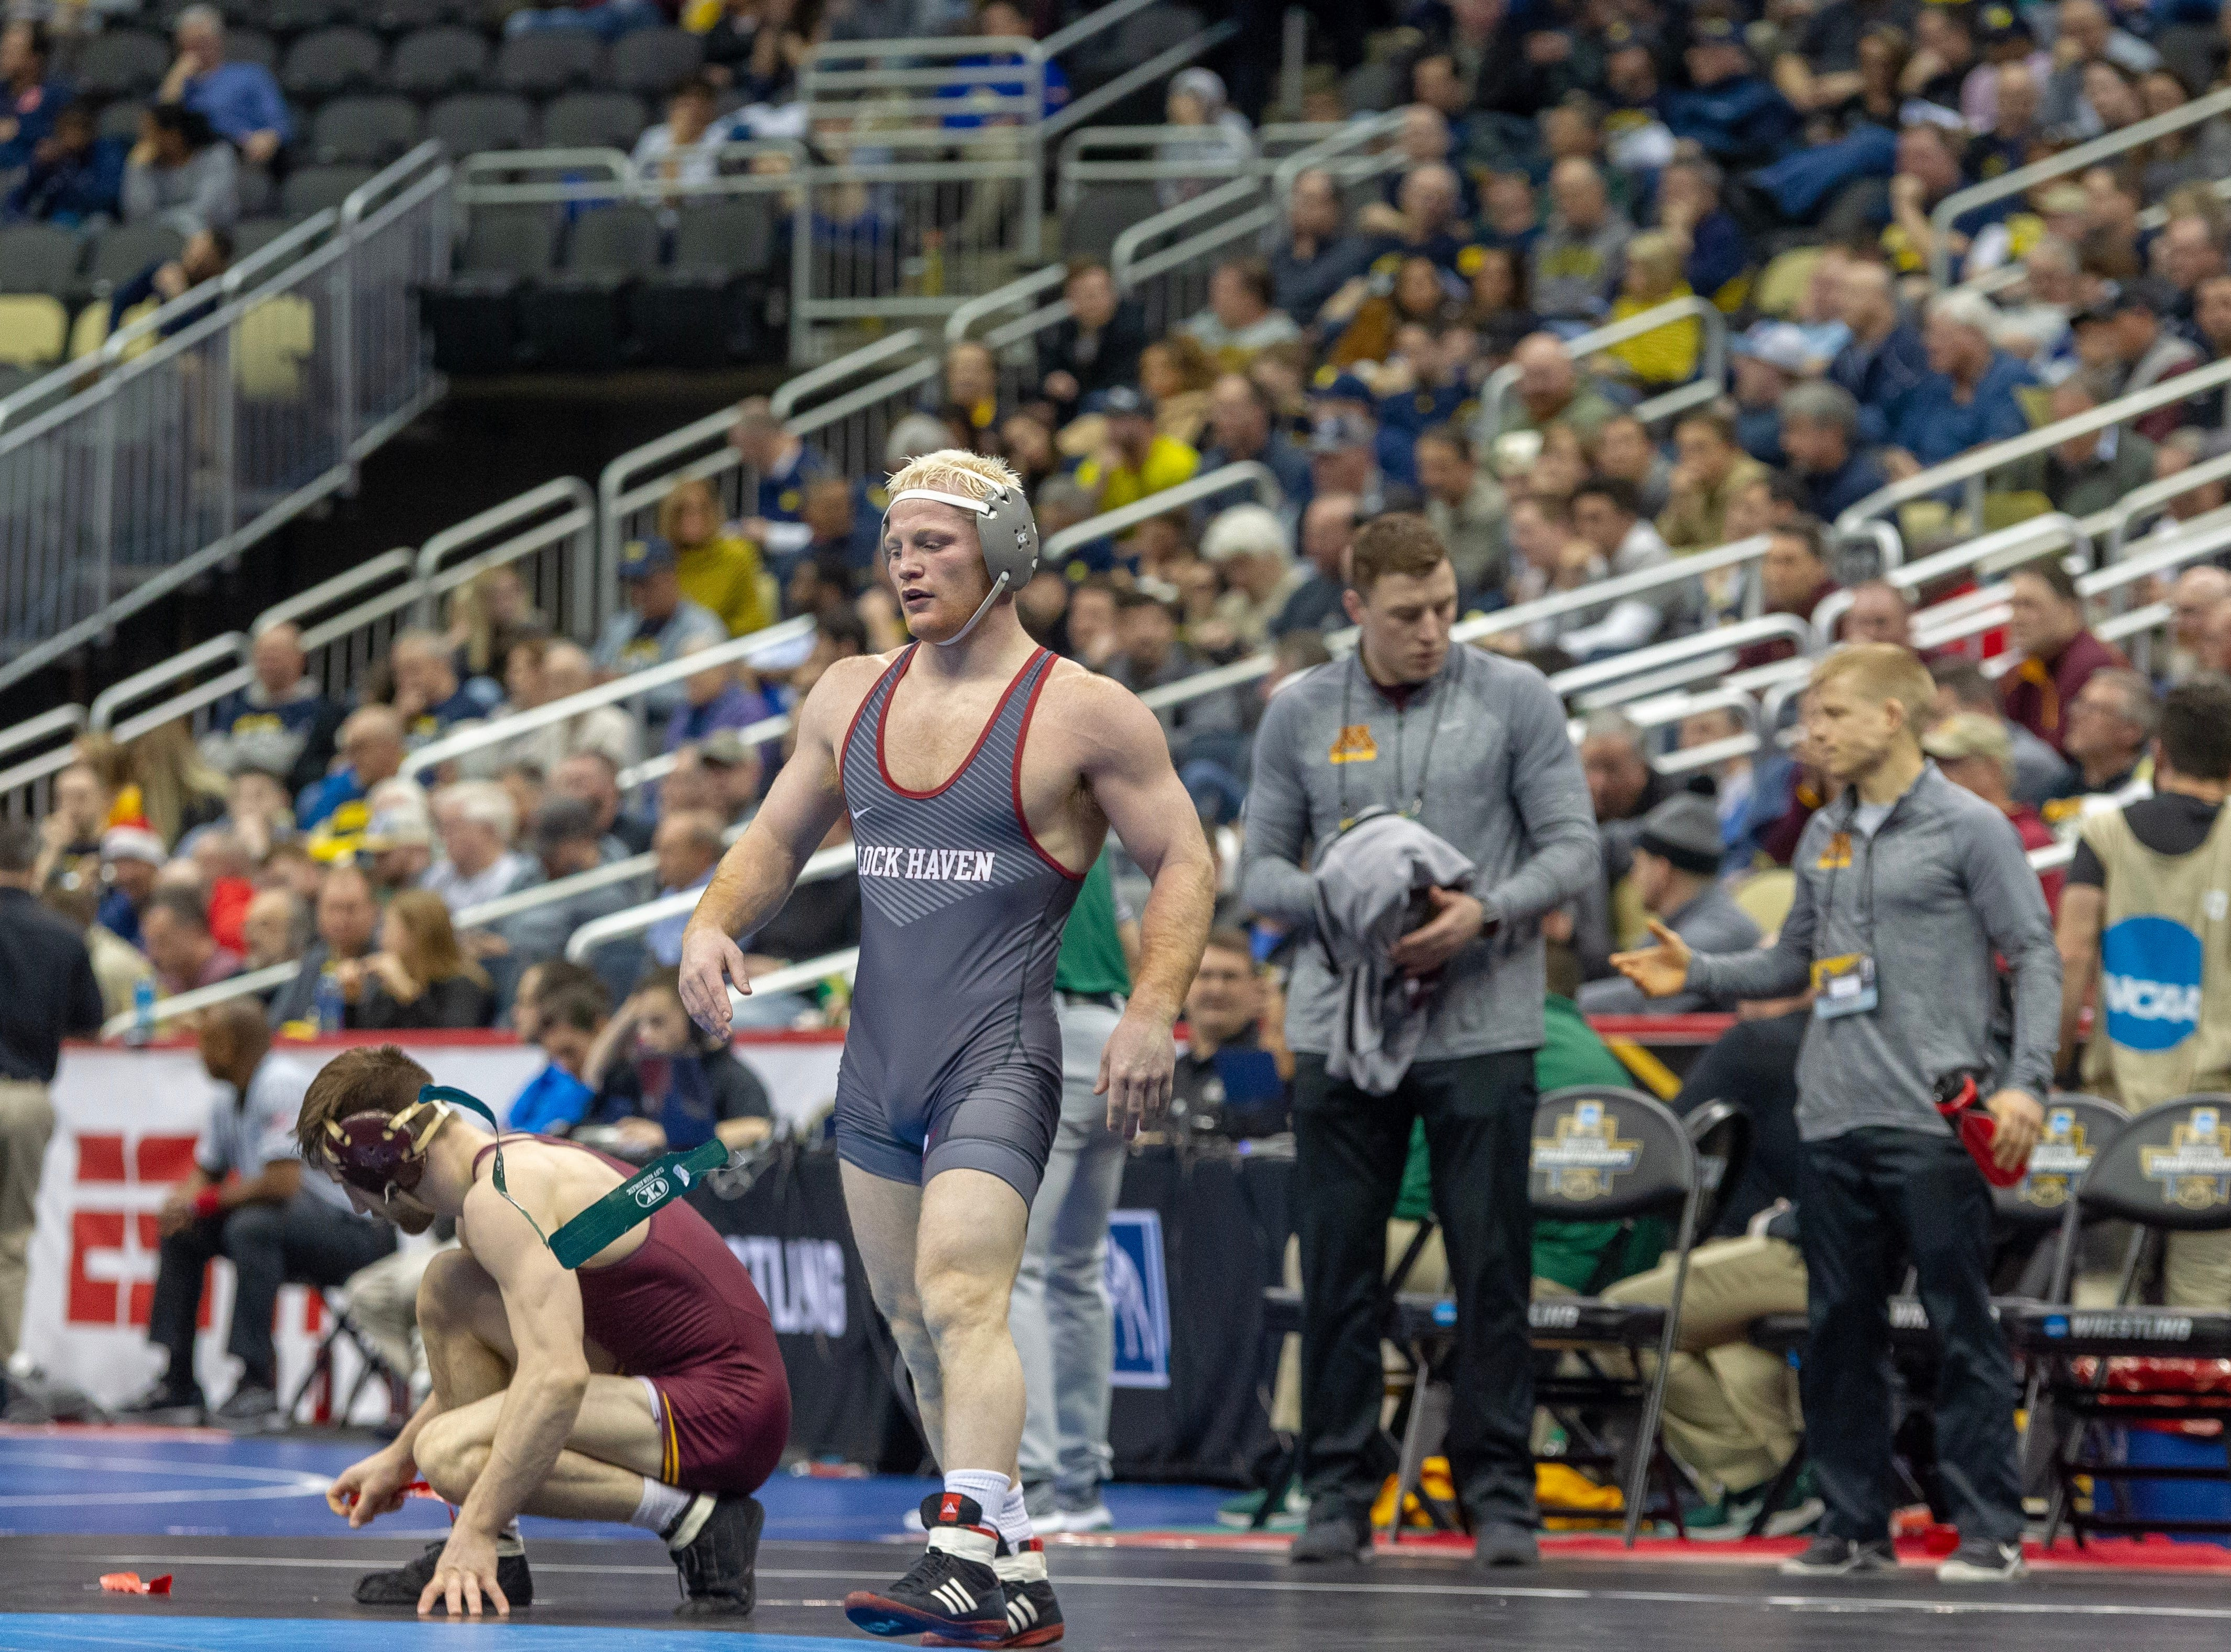 Chance Marsteller's opening-round victory in the NCAA Championships keeps him on path to culminate a grand personal recovery. Marsteller was a four-time state champ at Kennard-Dale and the nation's No. 1 recruit.